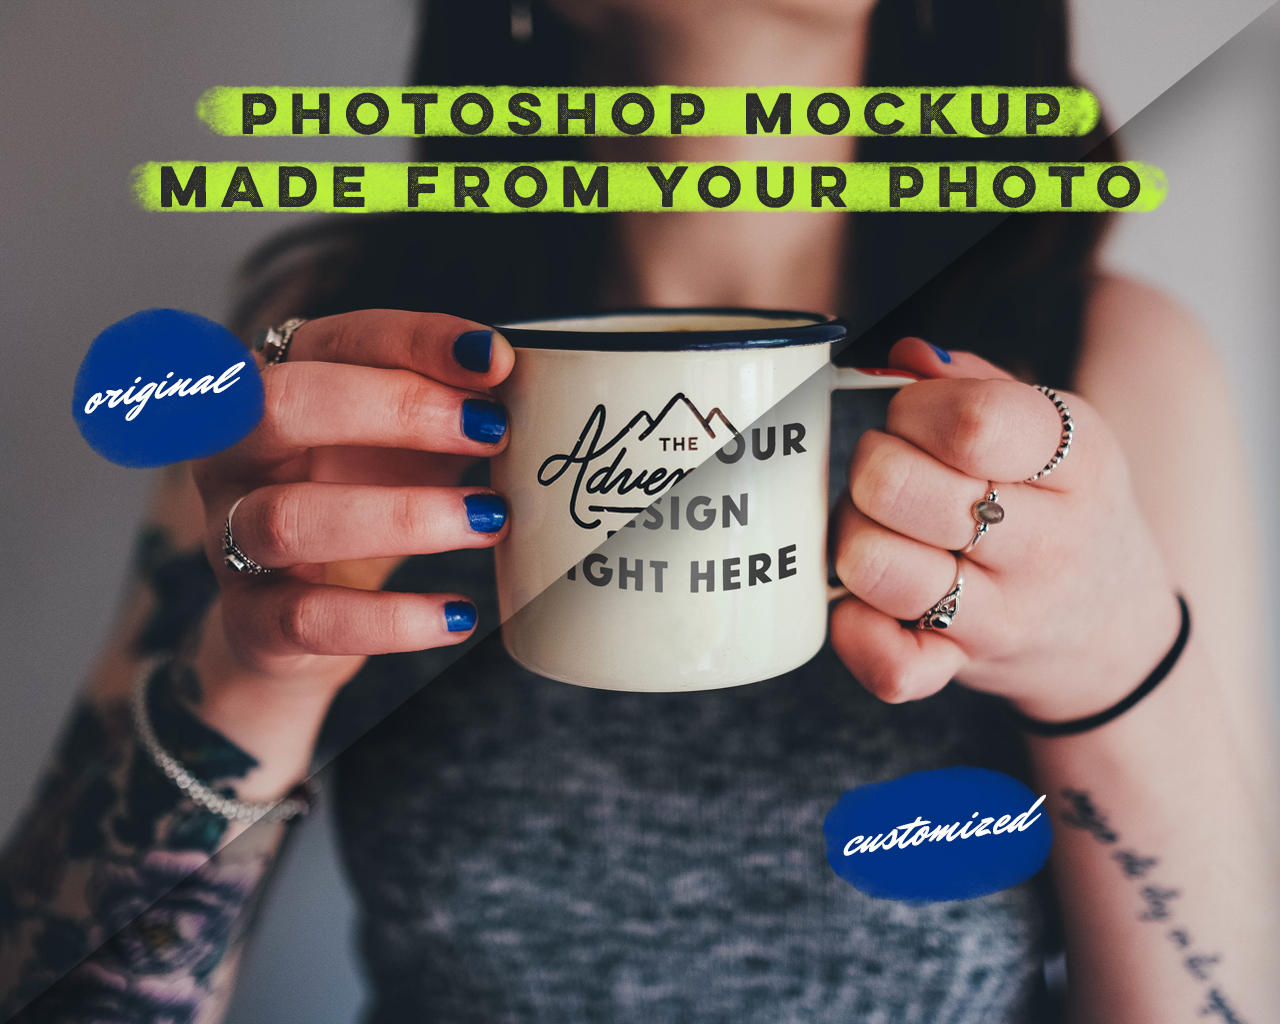 Photoshop Mockup Made from Your Photo by friskweb - 106993